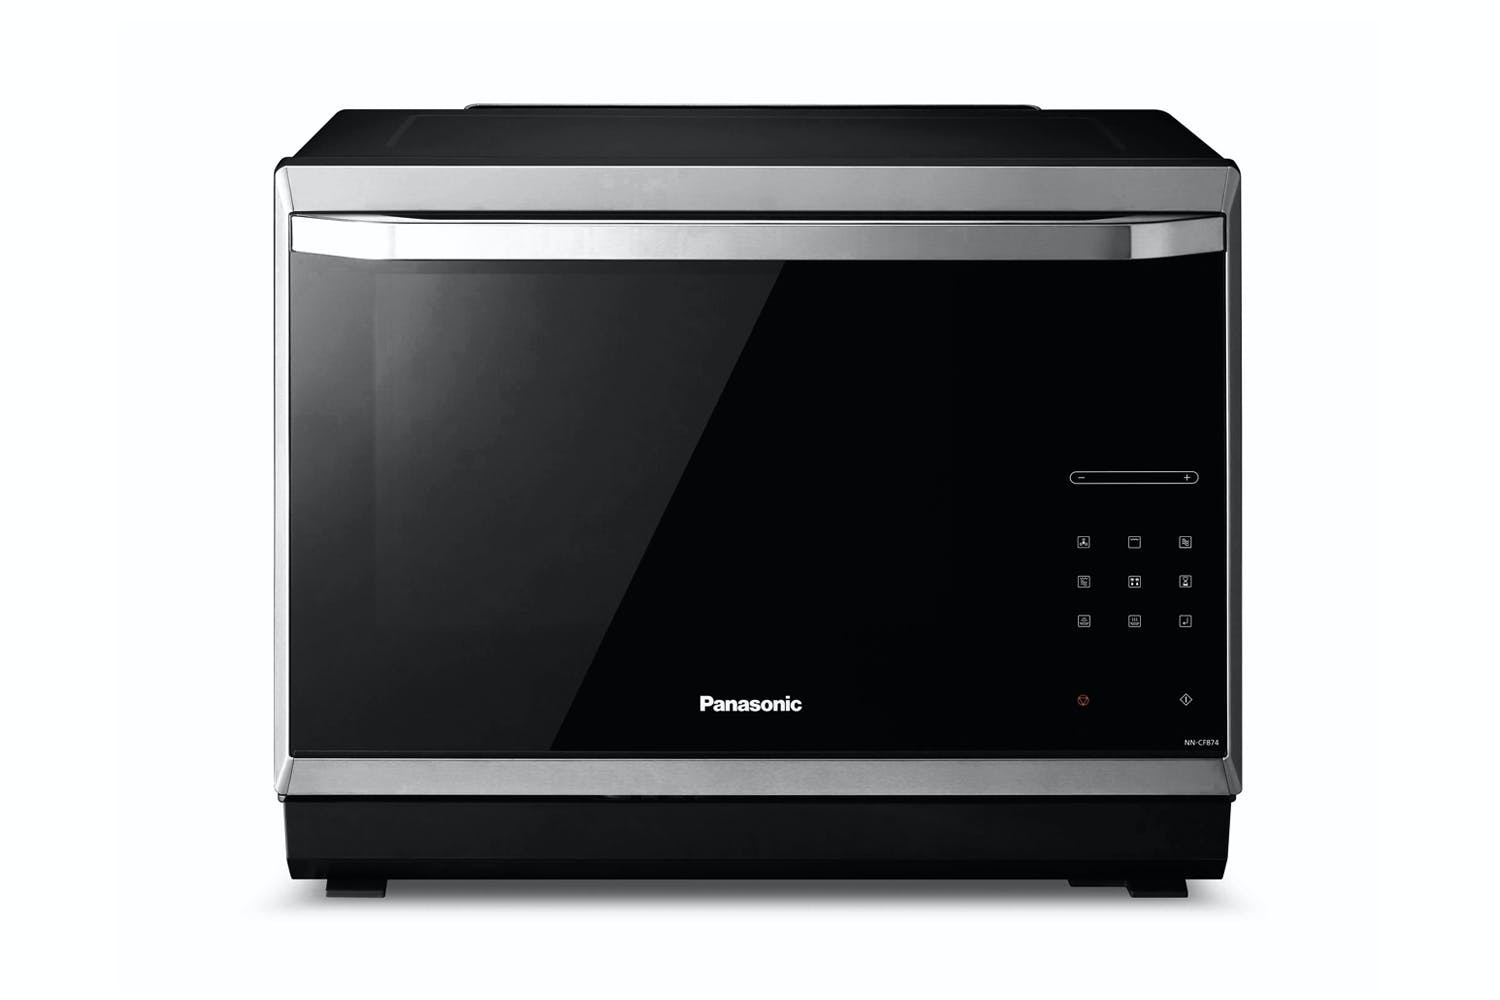 Panasonic Stainless Steel Convection Oven With Microwave